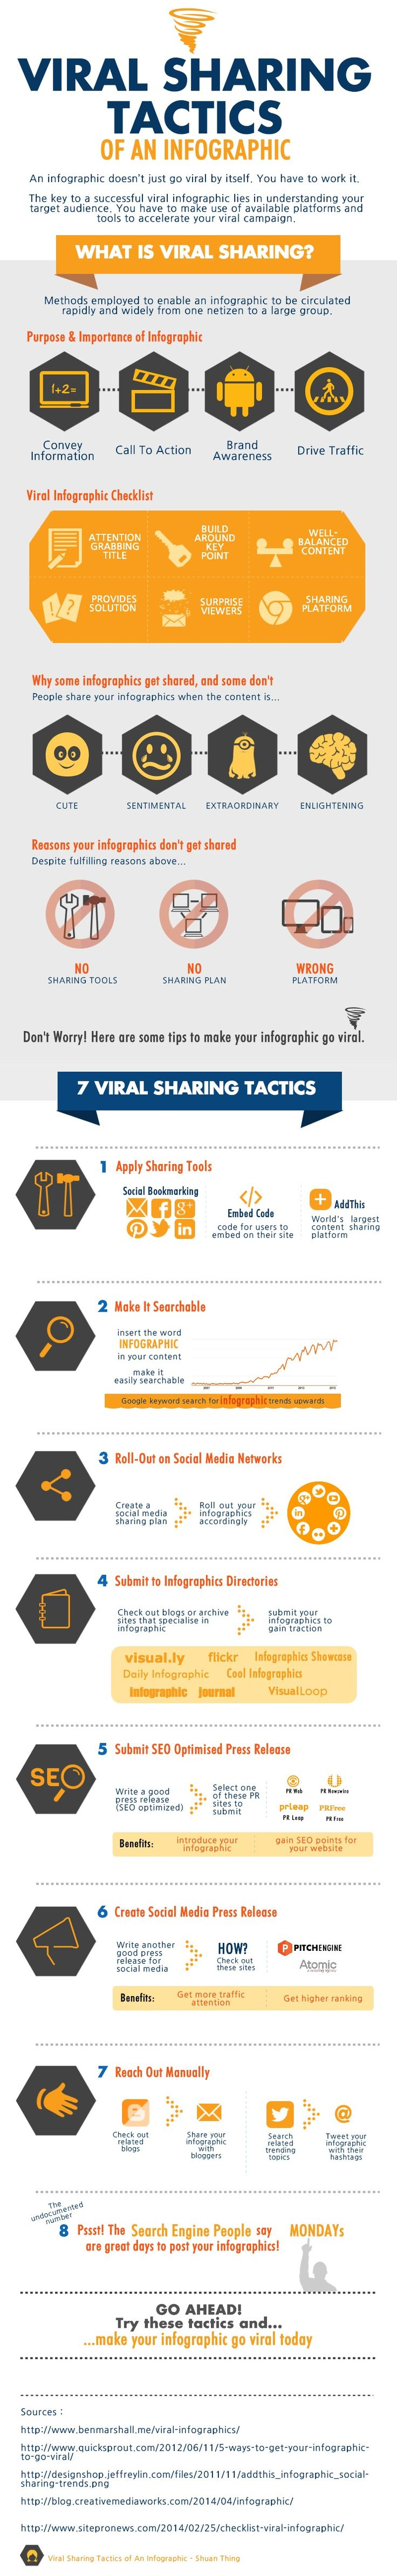 #Viral Sharing Tactics of an #Infographic